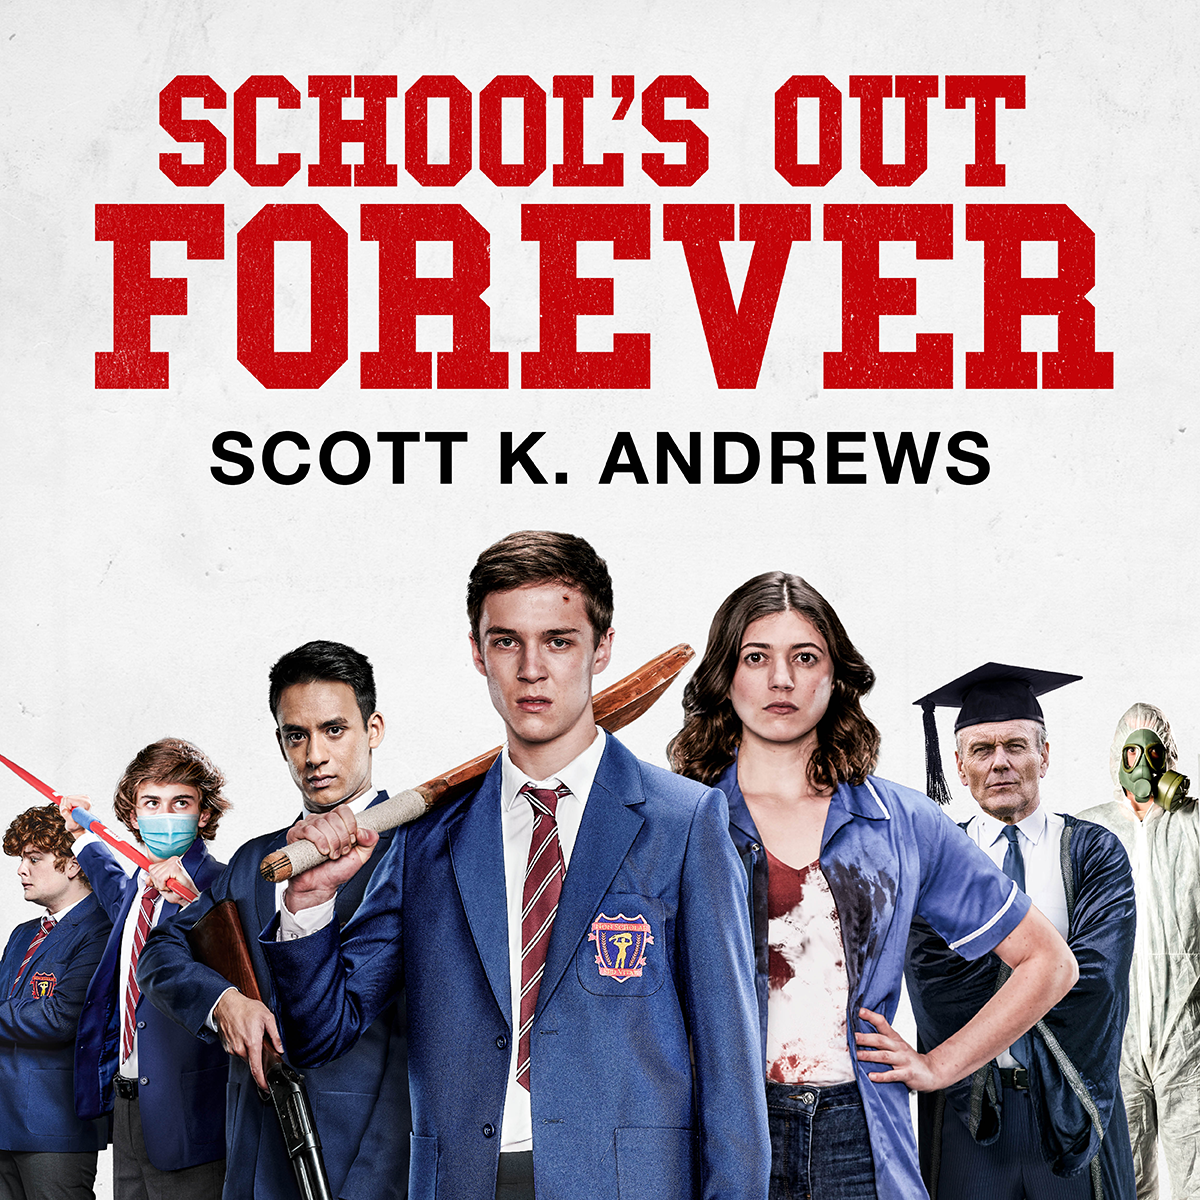 School's Out Forever, the new film inspired by the hit book